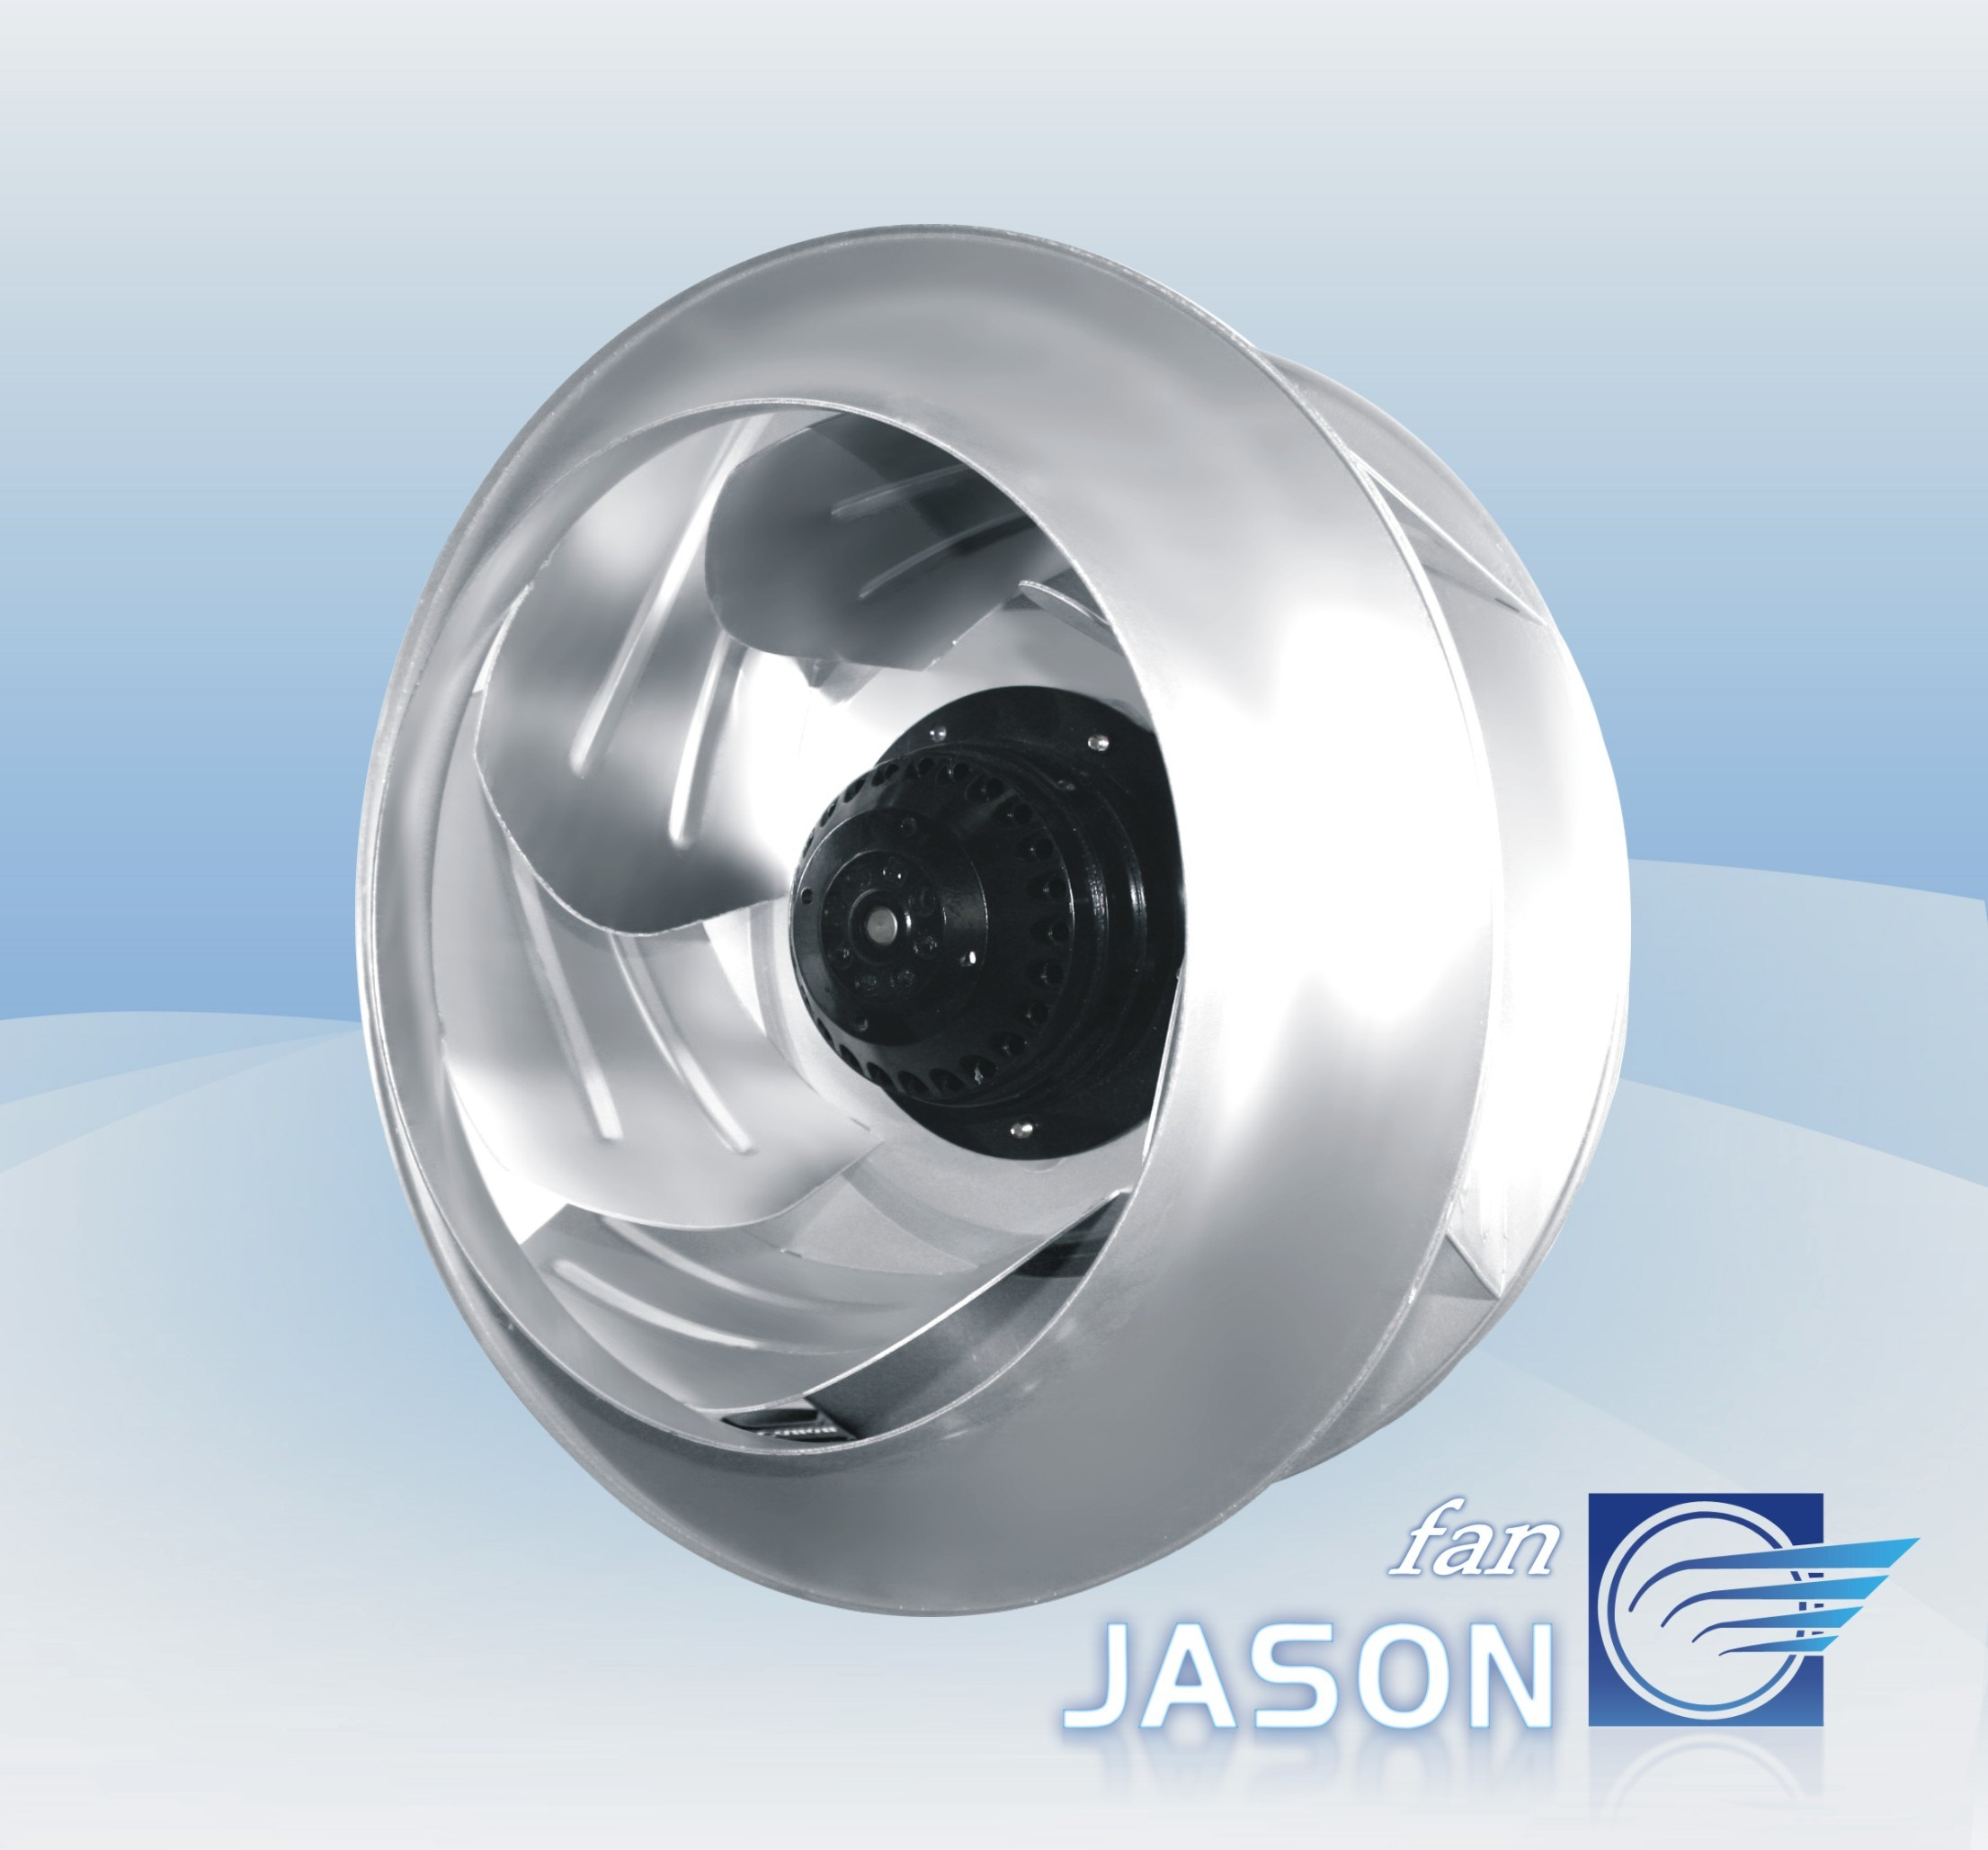 Centrifugal Fan Blades : China thermal protected metal blade centrifugal fan fjc e